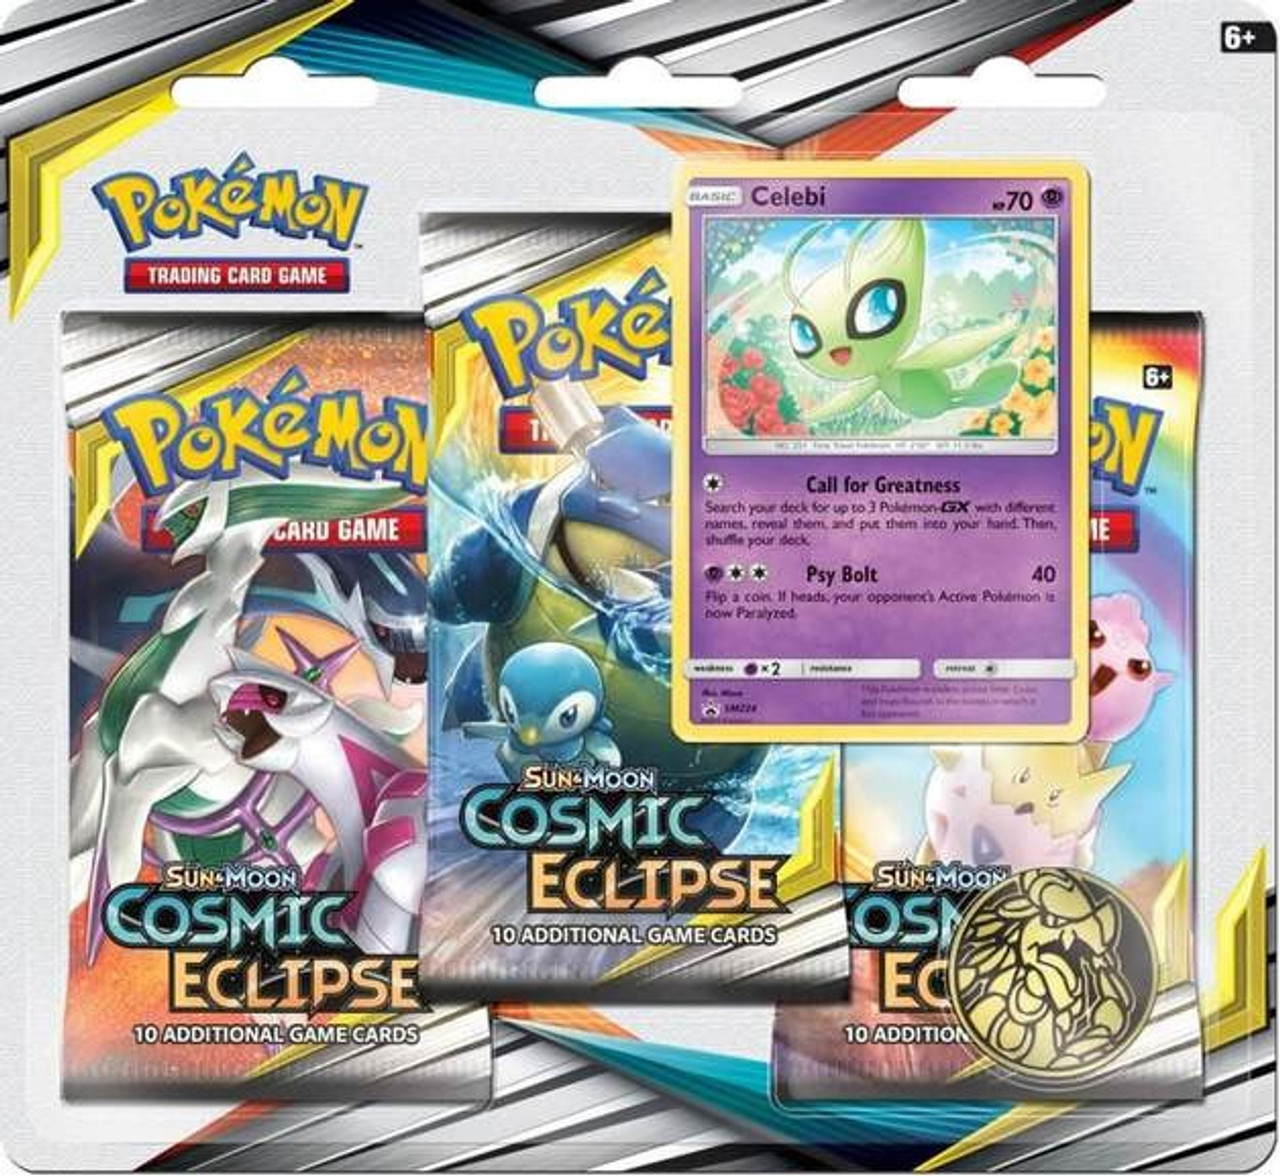 Lunar Eclipse Roblox Avatar Now Pokemon Trading Card Game Sun Moon Cosmic Eclipse Celebi Special Edition 3 Booster Packs Promo Card Coin Pokemon Usa Toywiz